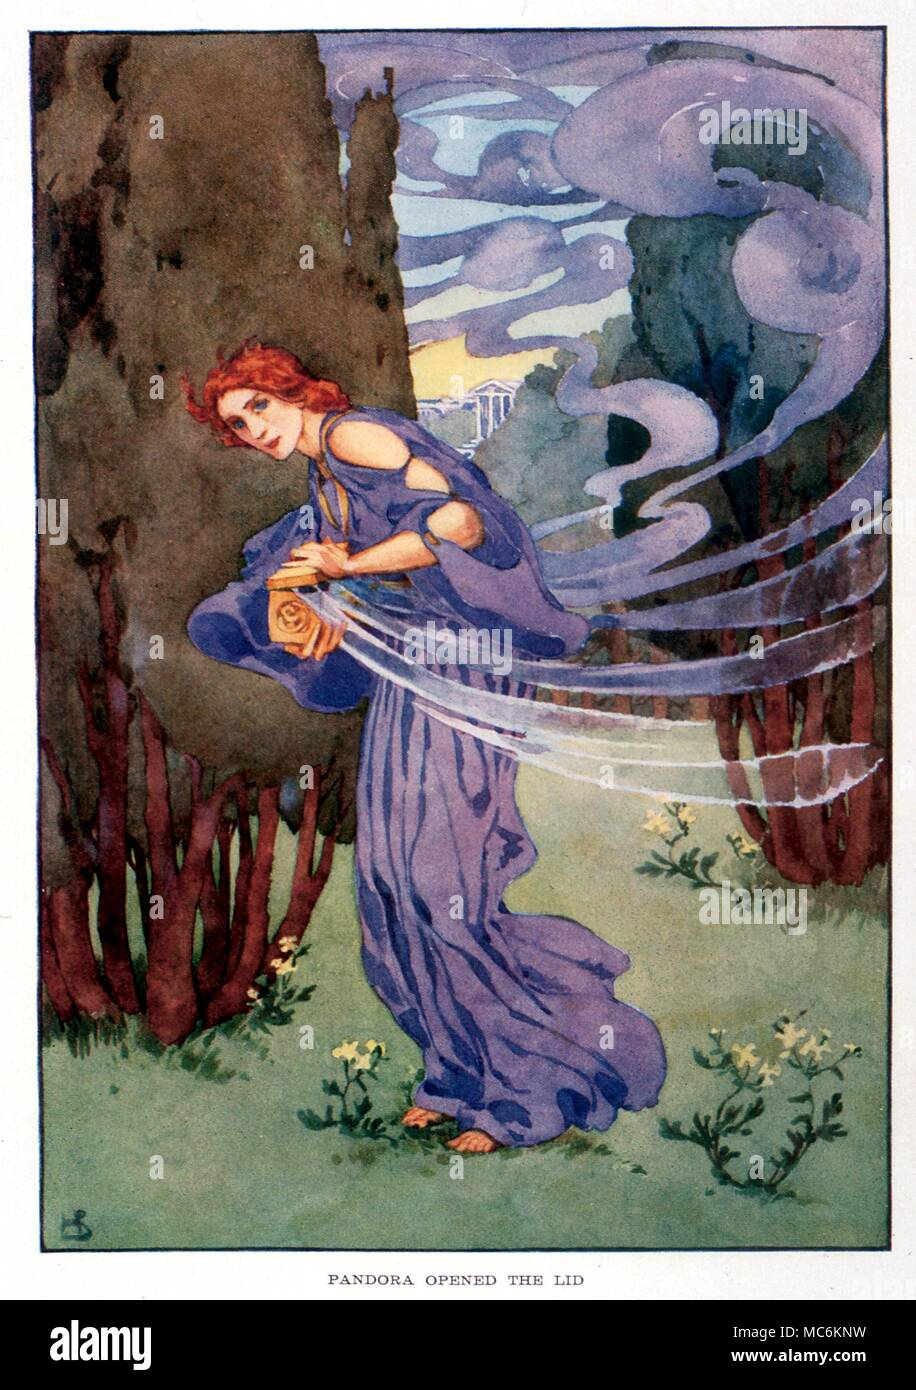 Greek Mythology. Pandora opens the lid of the box given to the world by the Gods, and allows all the evils to escape. Illustration by Helen Stratton, 1915, for 'A Book of Myths'. - Stock Image